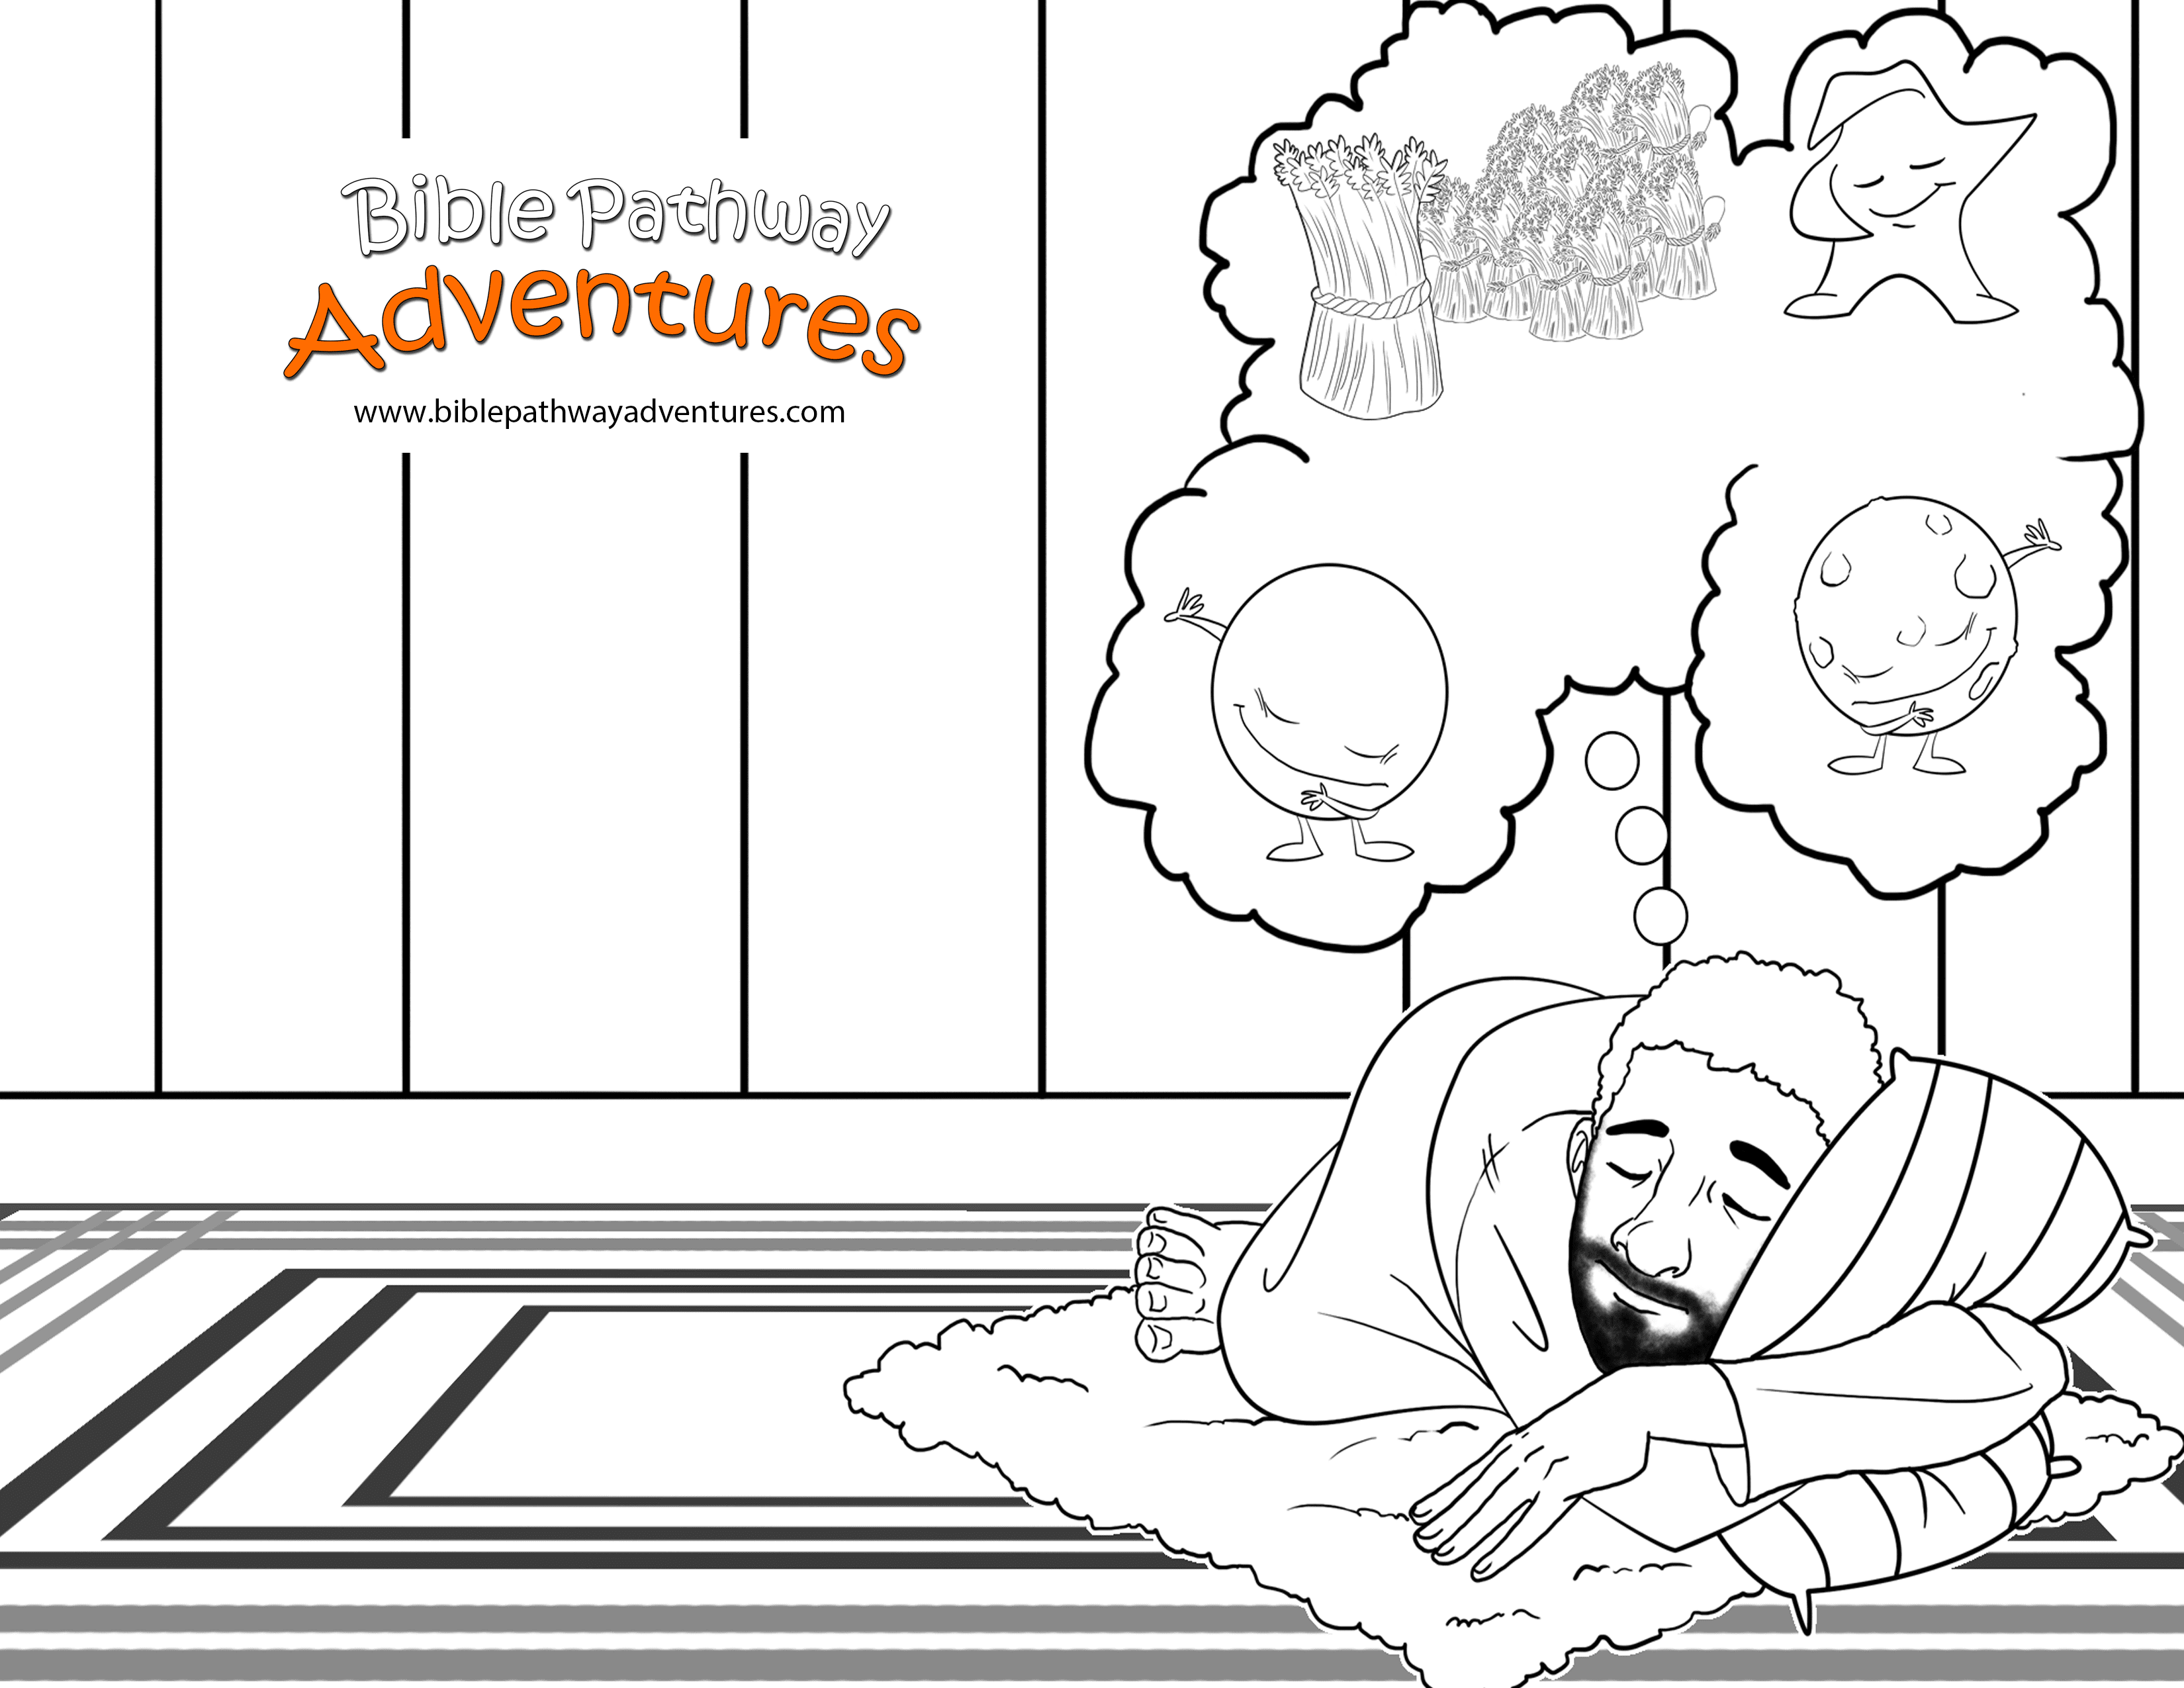 joseph the dreamer coloring pages joseph dreams coloring pages go back gt gallery for pages dreamer the coloring joseph